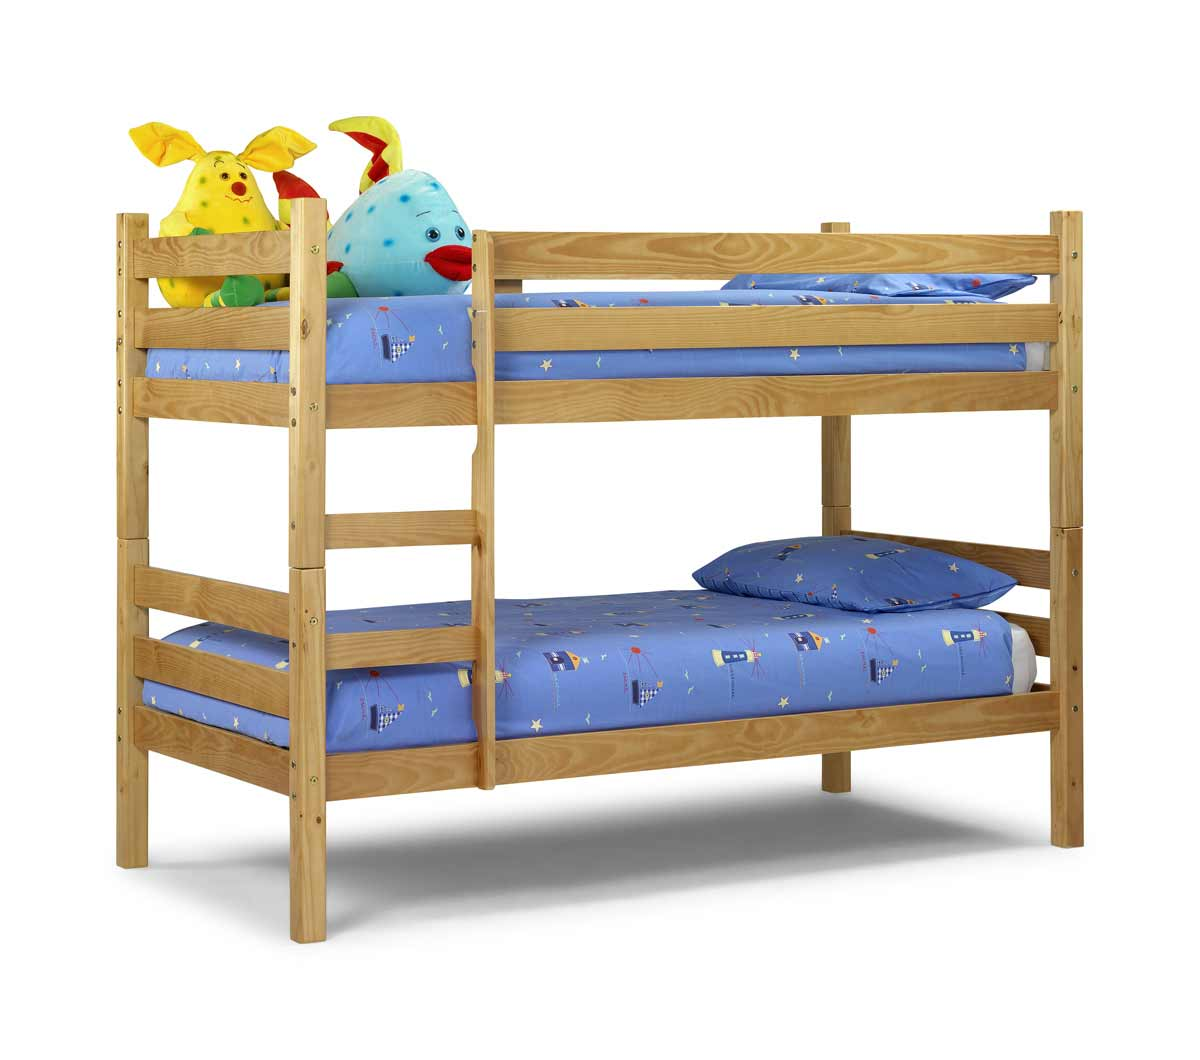 ikea kids loft bed a space efficient furniture idea for kids rooms